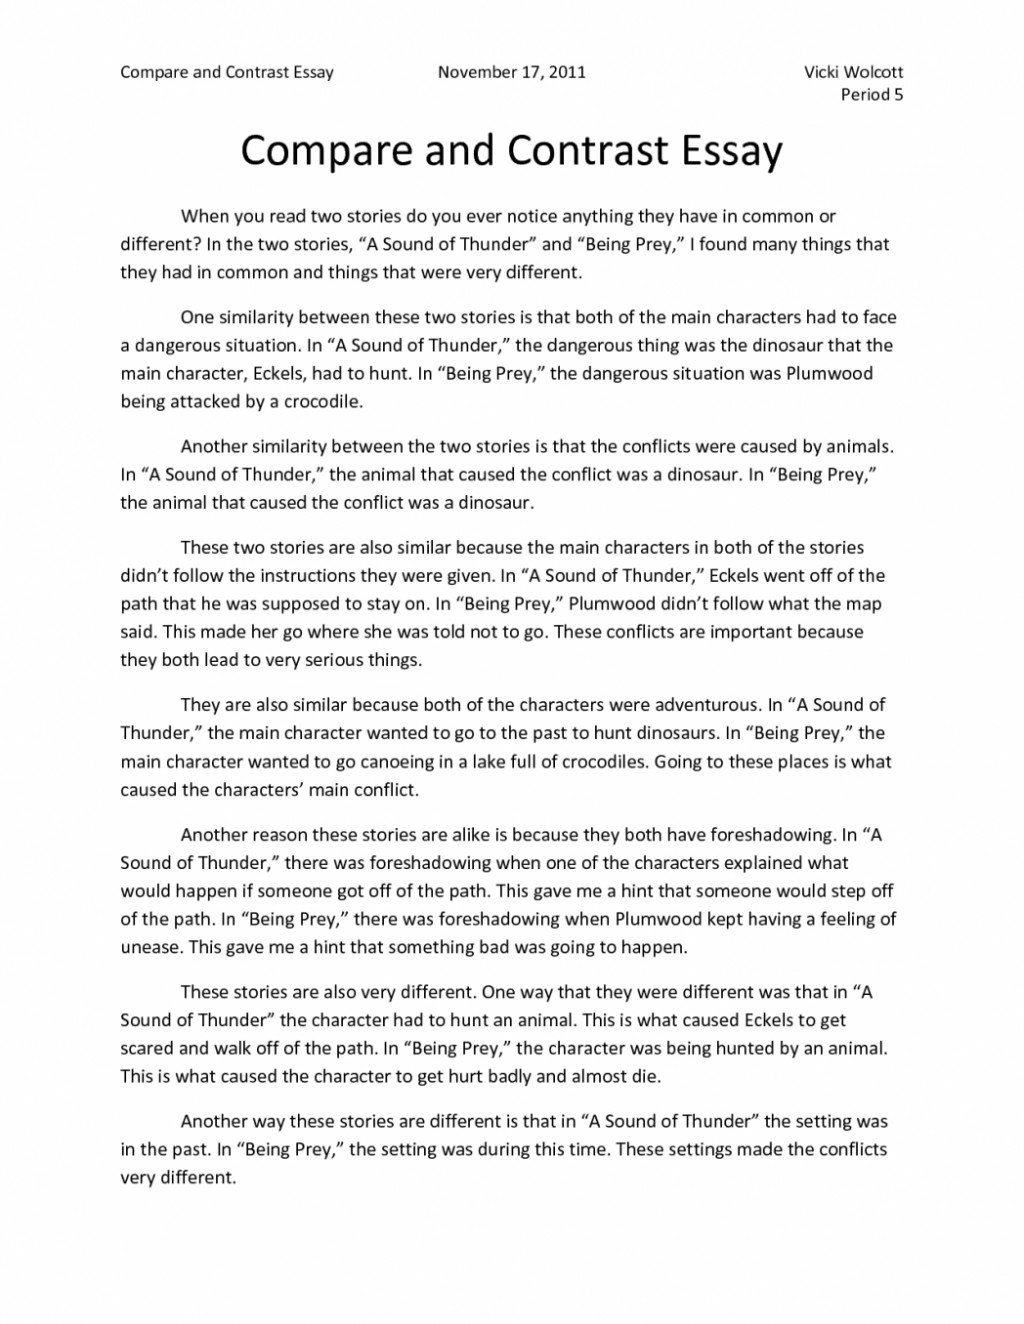 003 Compare And Contrast Essay Topics Example Good For College Students Sample Research Paper Writing Argumentative Fantastic Elementary Ielts Large